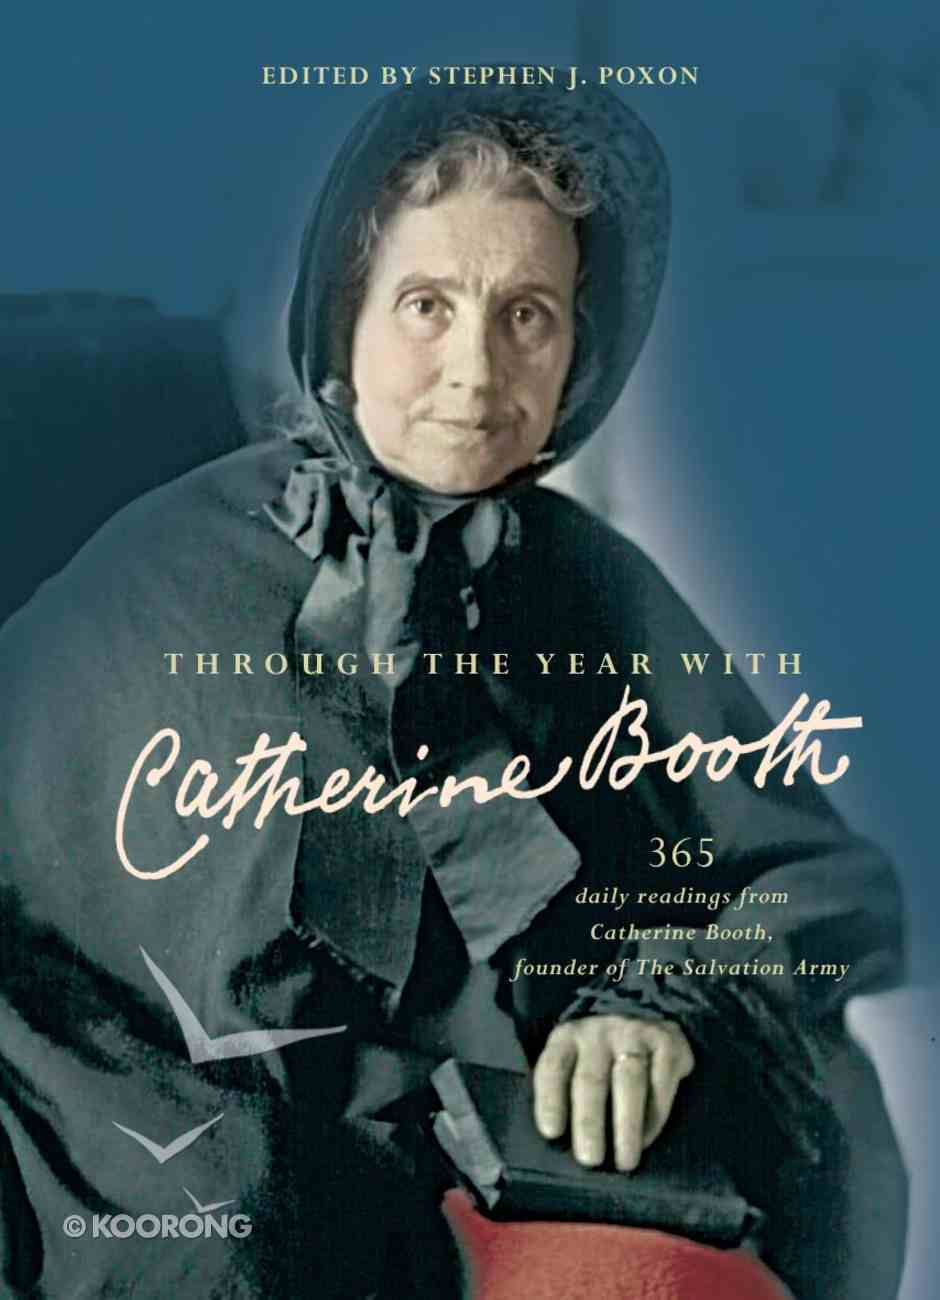 Through the Year With Catherine Booth: 365 Daily Readings From Catherine Booth, Founder of the Salvation Army Paperback